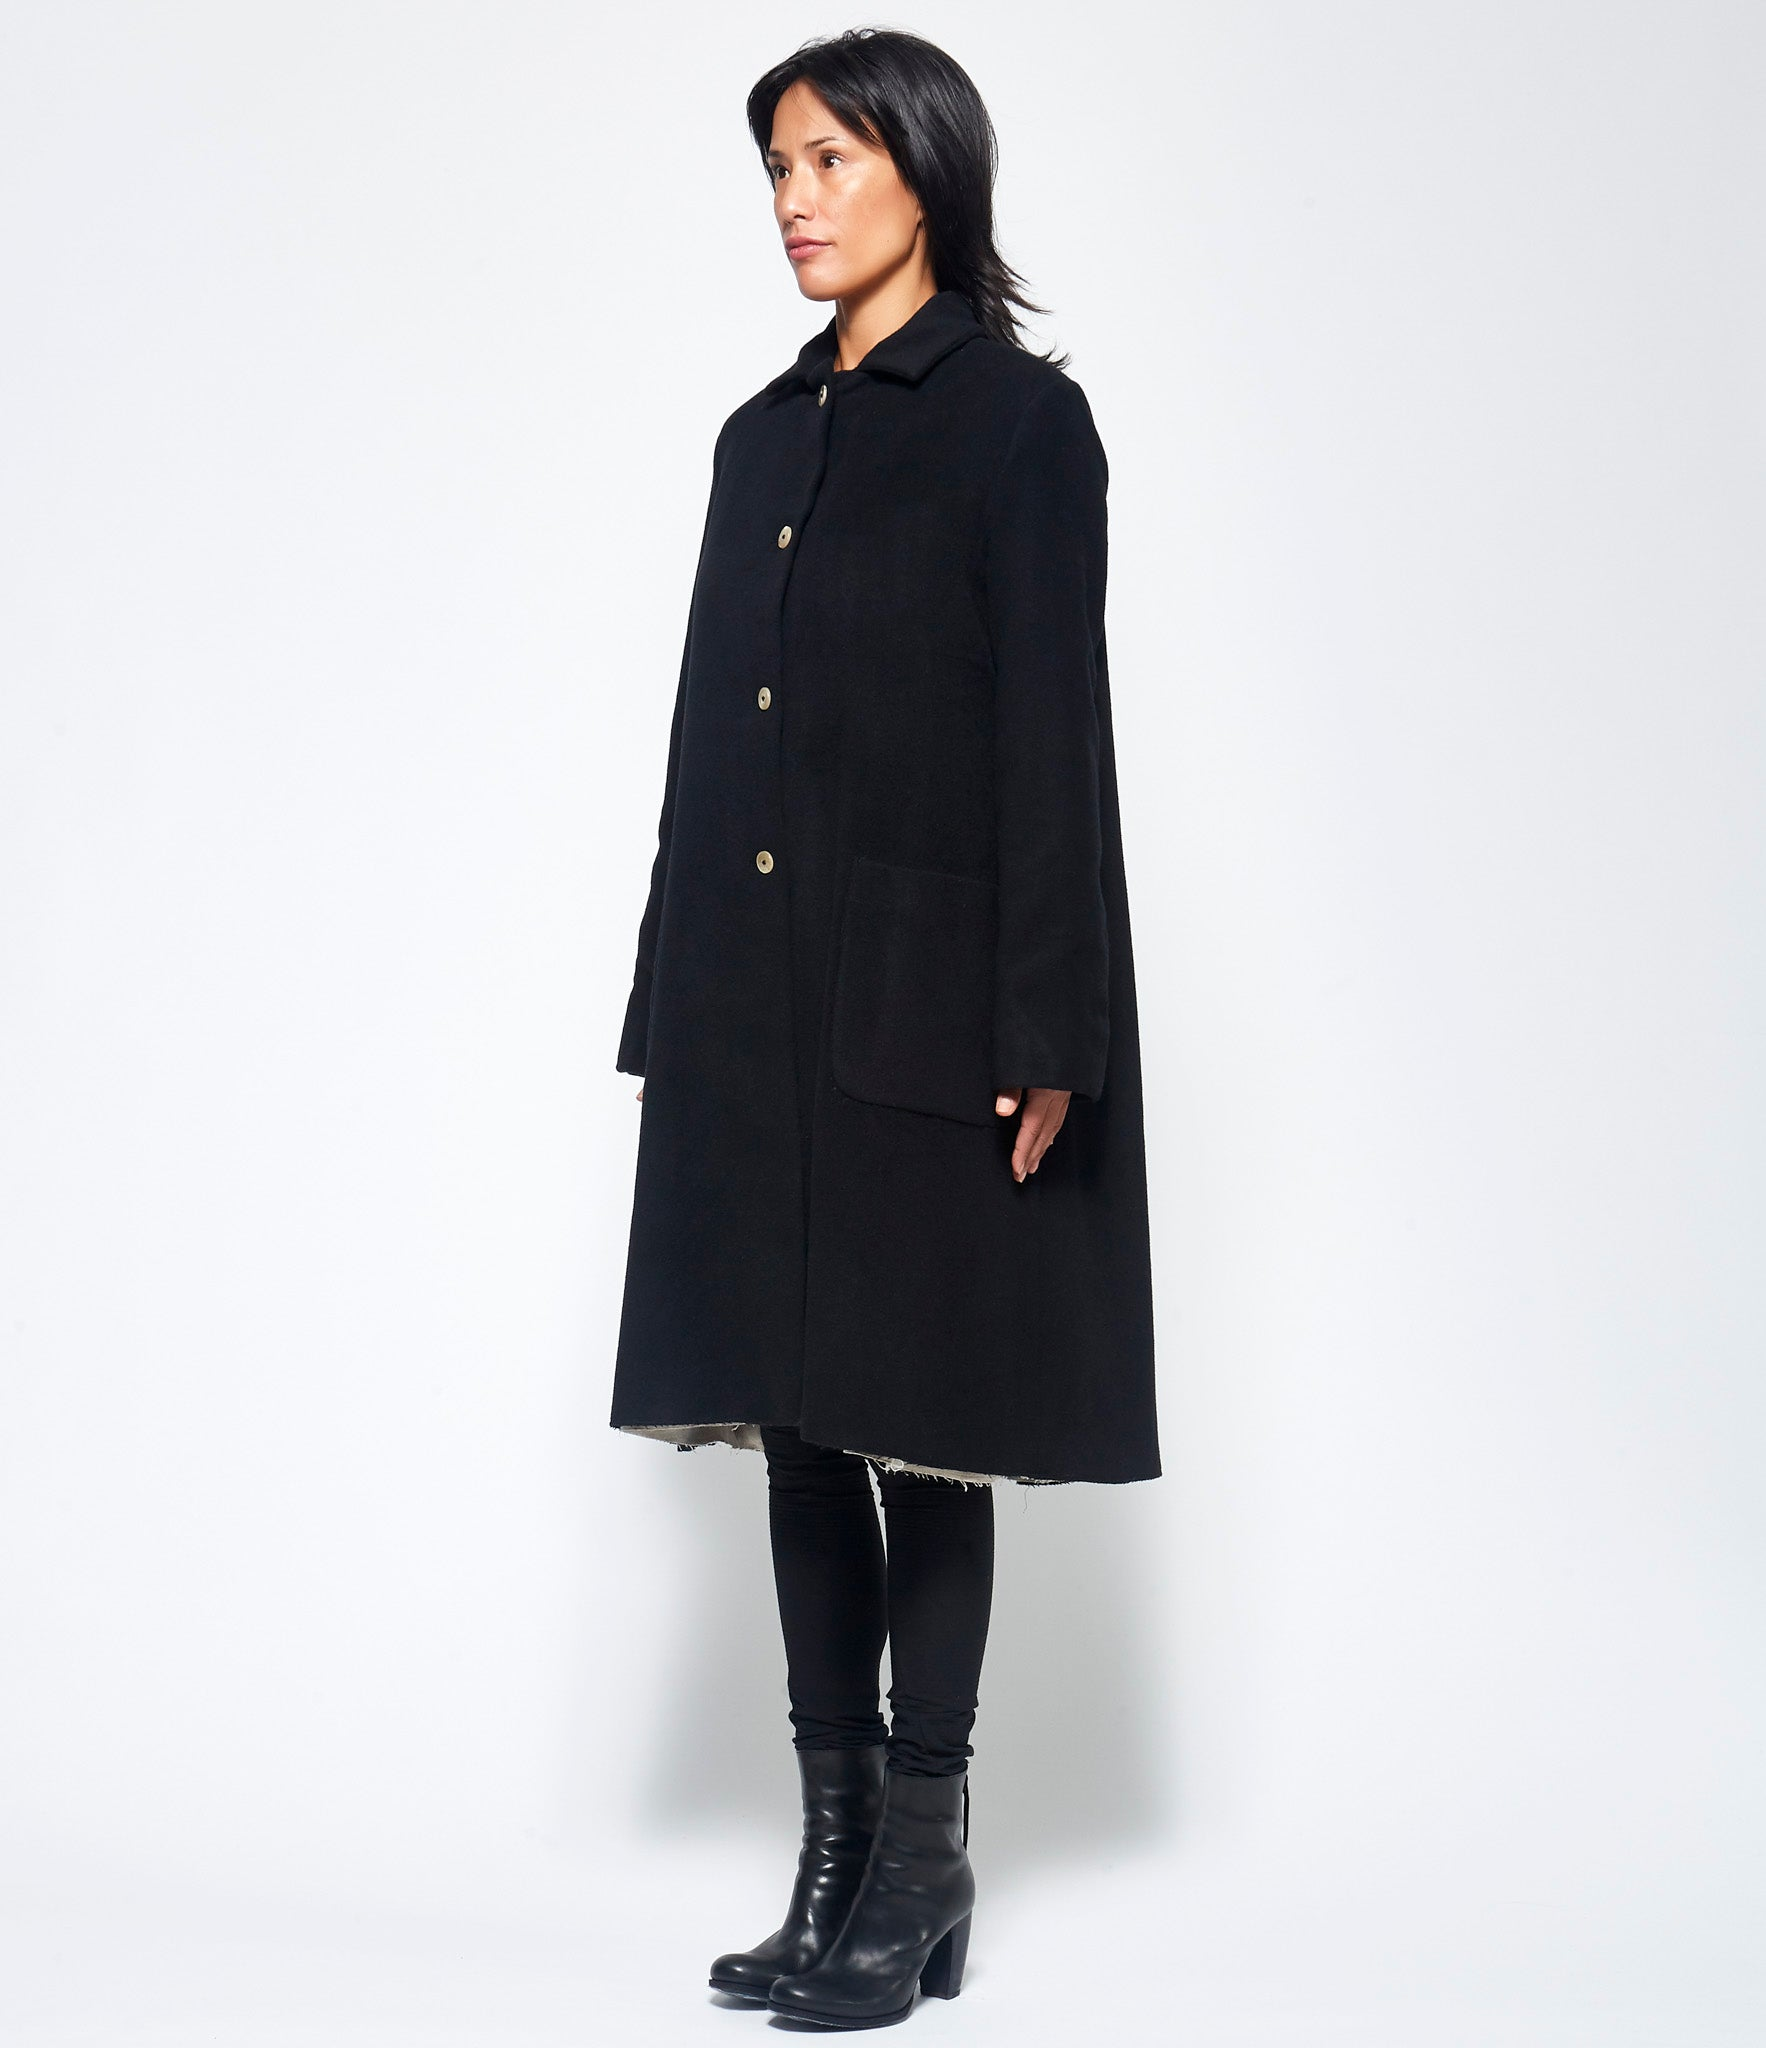 m.a+ Black Wide Two Pocket Coat